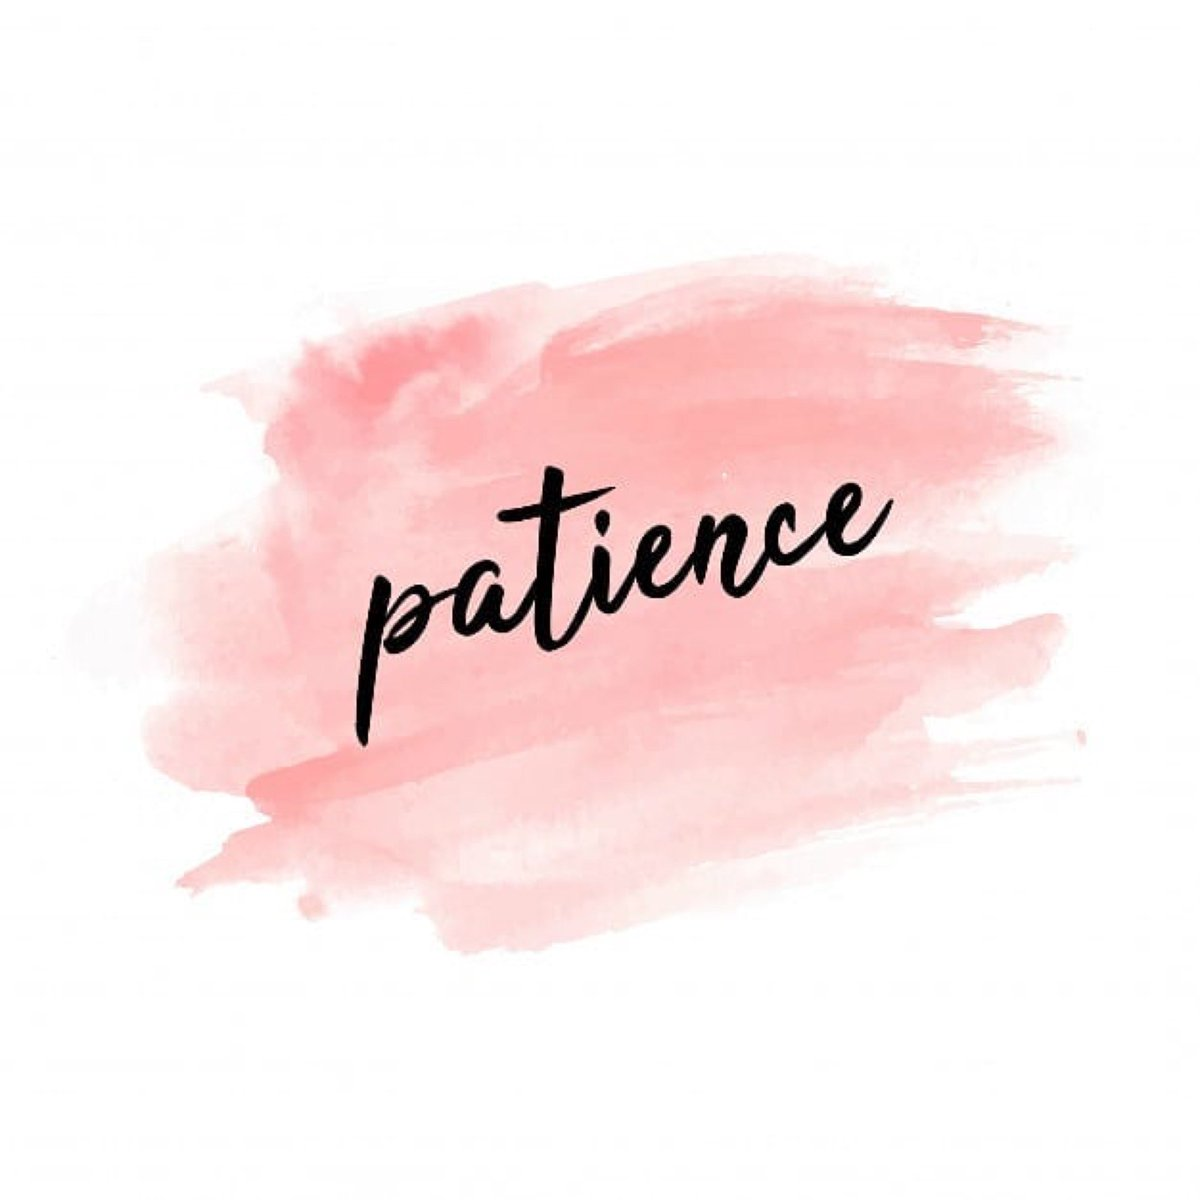 Countz Lifestyle On Twitter Have Patience Quotes Inspire